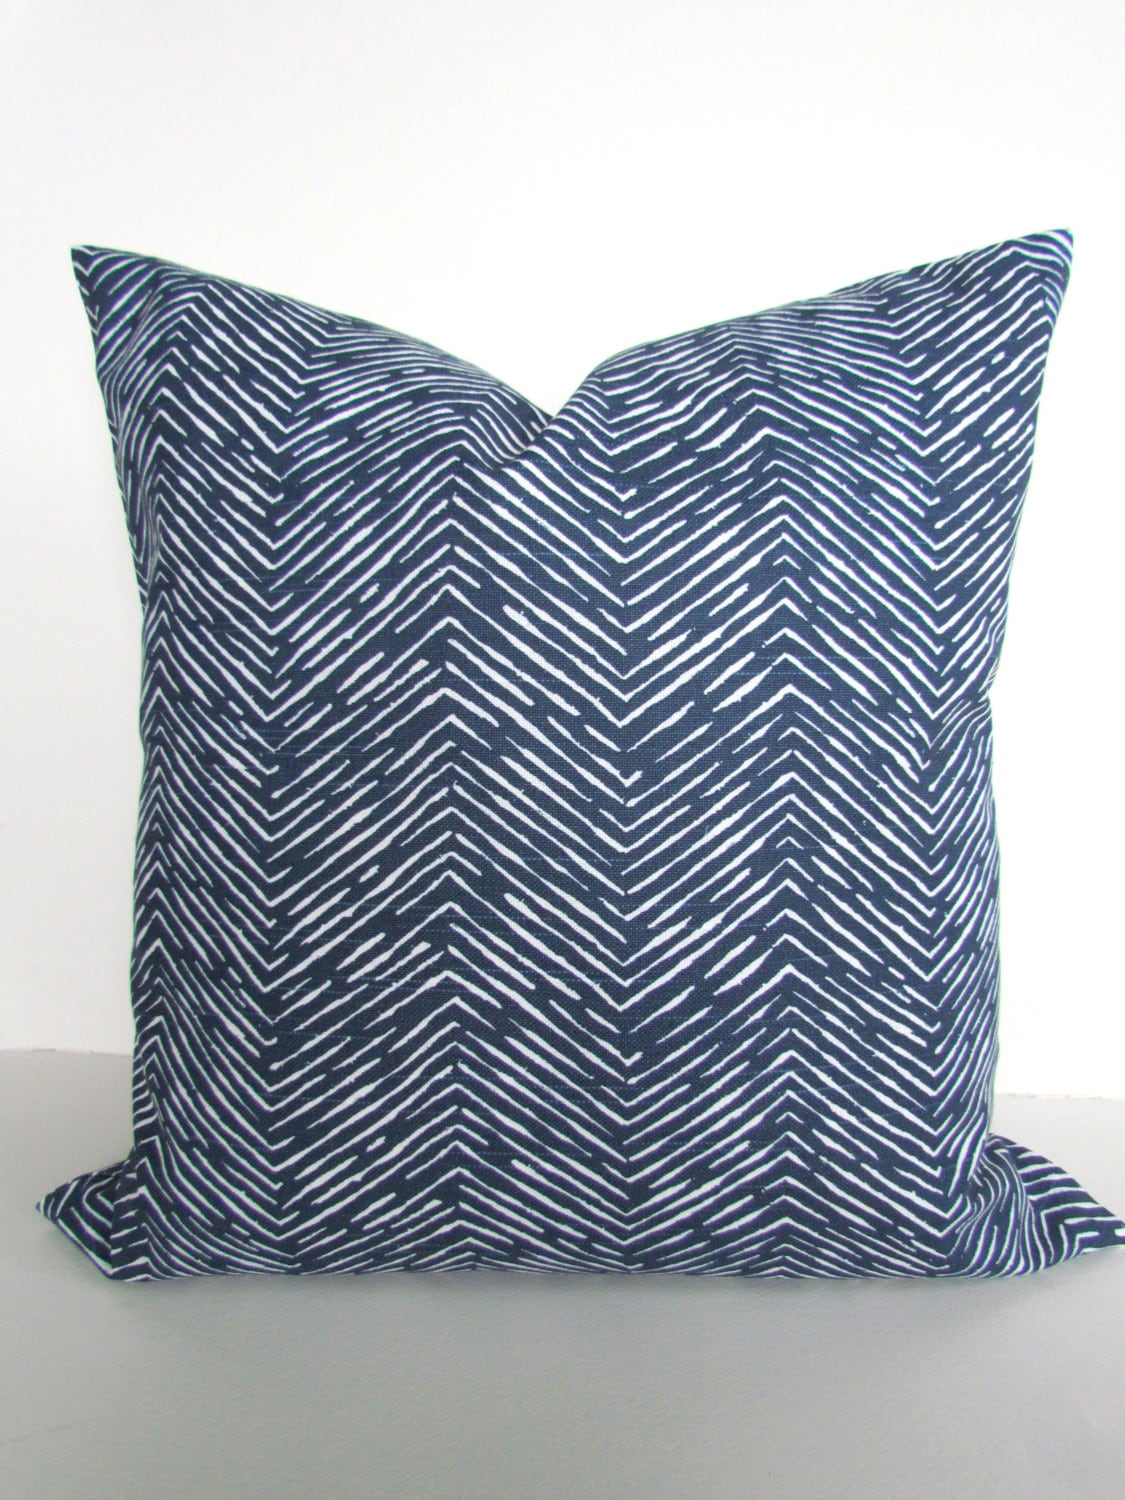 Dark Blue Throw Pillow : BLUE PILLOWS Blue Throw Pillows Dark Blue Herringbone Pillow